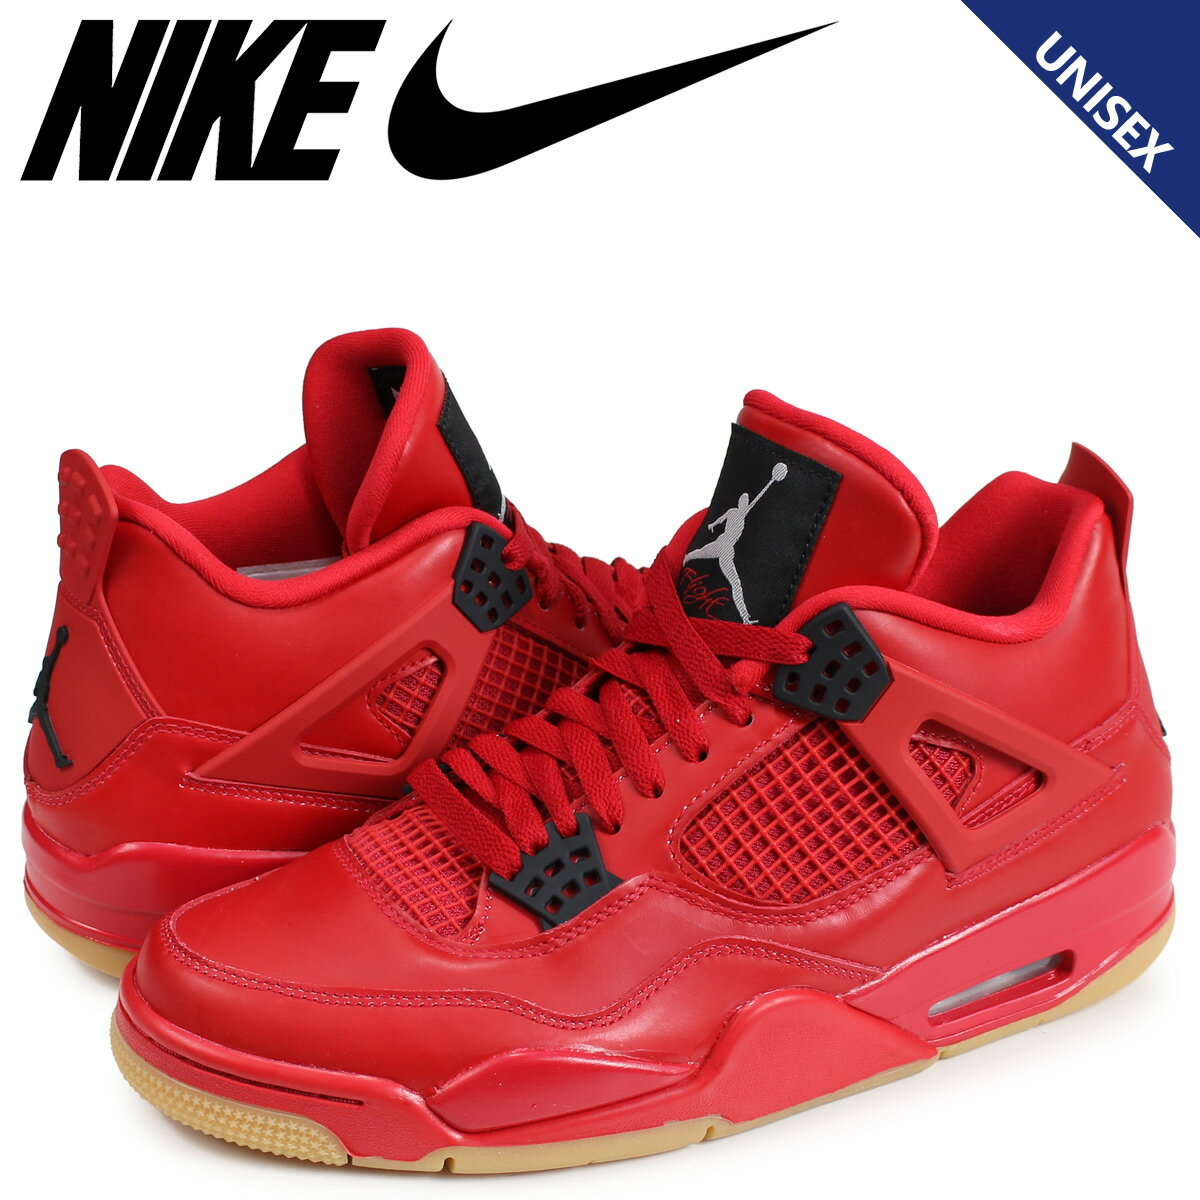 メンズ靴, スニーカー 2000OFF NIKE WMNS AIR JORDAN 4 RETRO NRG SINGLES DAY 4 AV3914-600